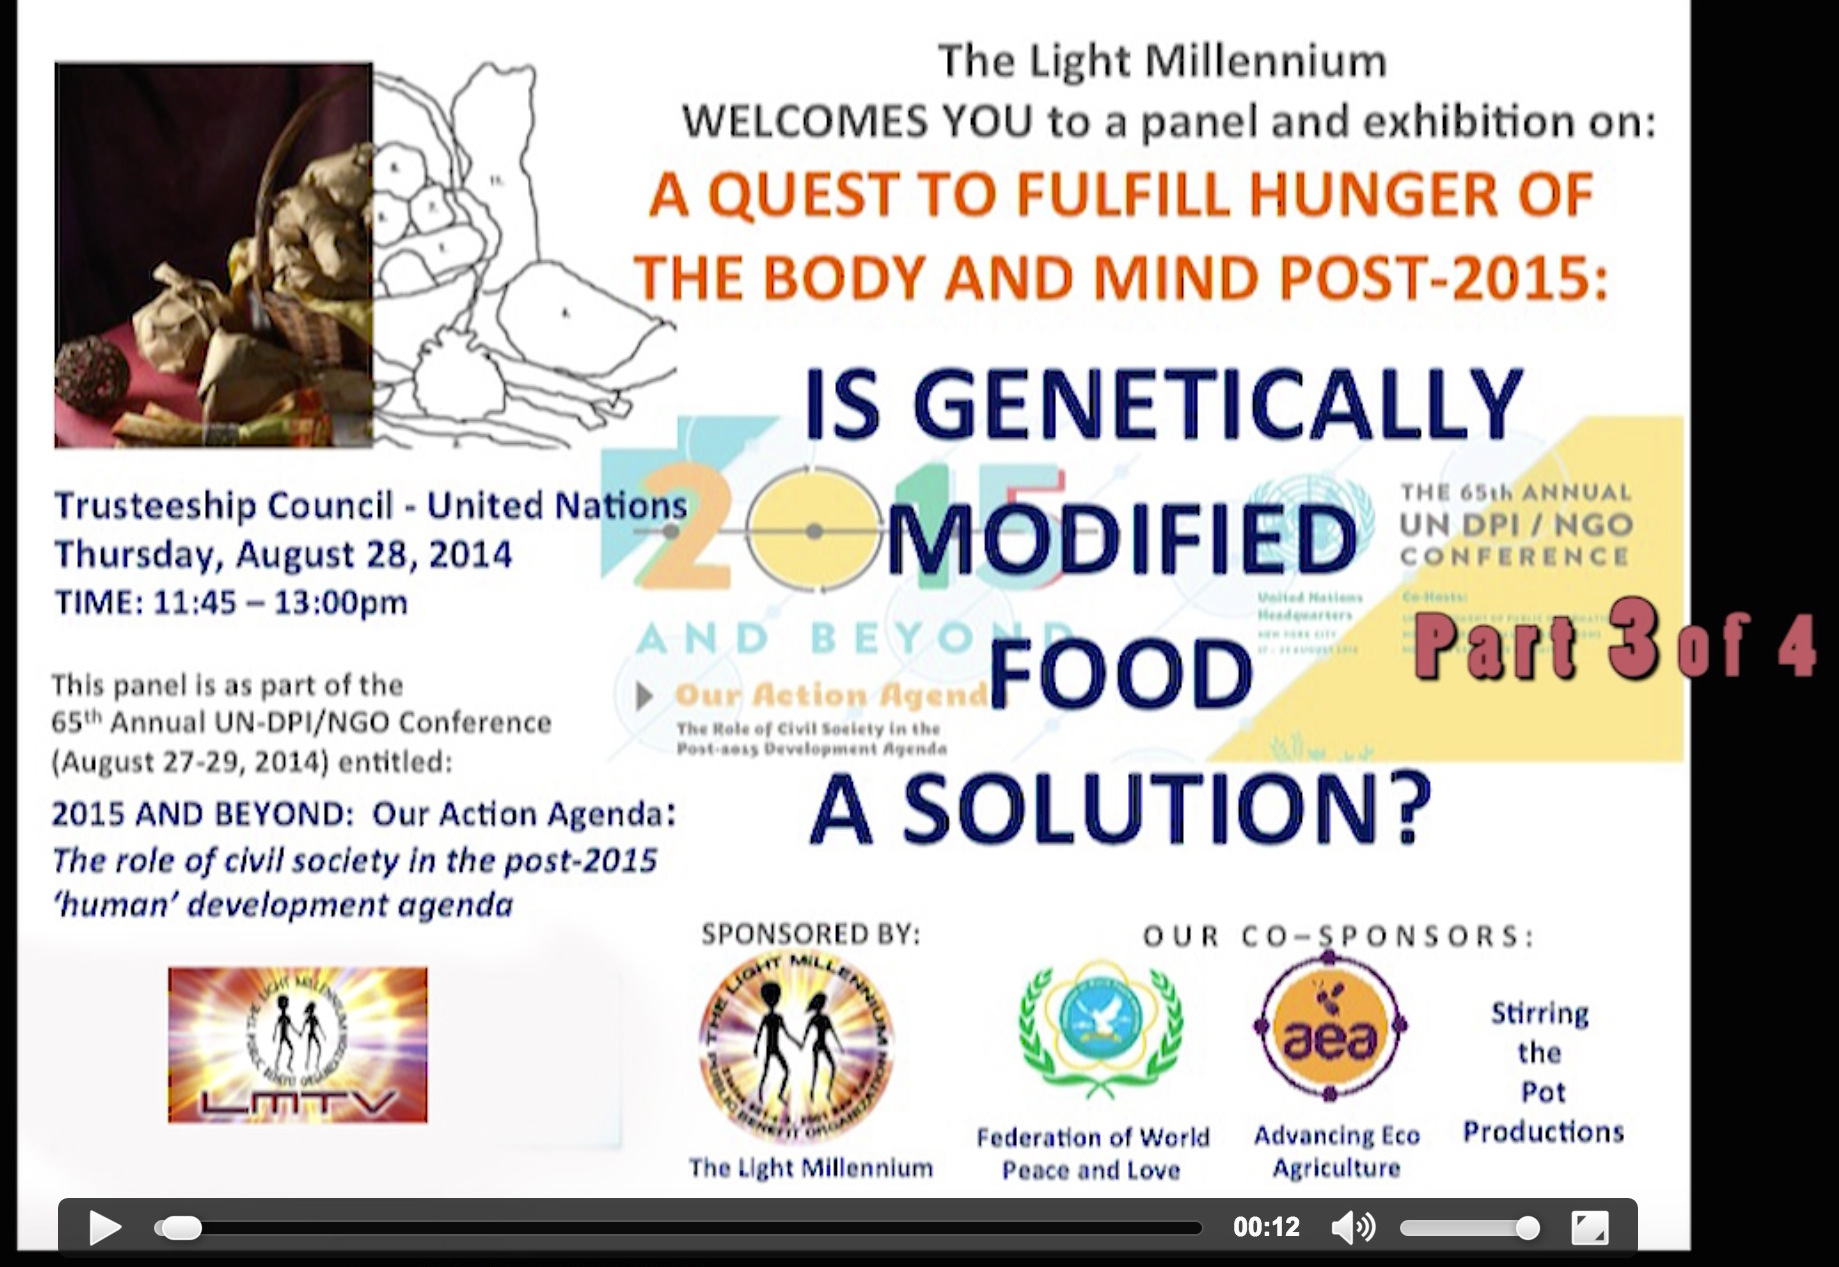 A QUEST TO FULFILL HUNGER OF THE BODY AND MIND IN POST 2015: IS GENETICALLY MODIFIED FOOD A SOLUTION? Part 3/4